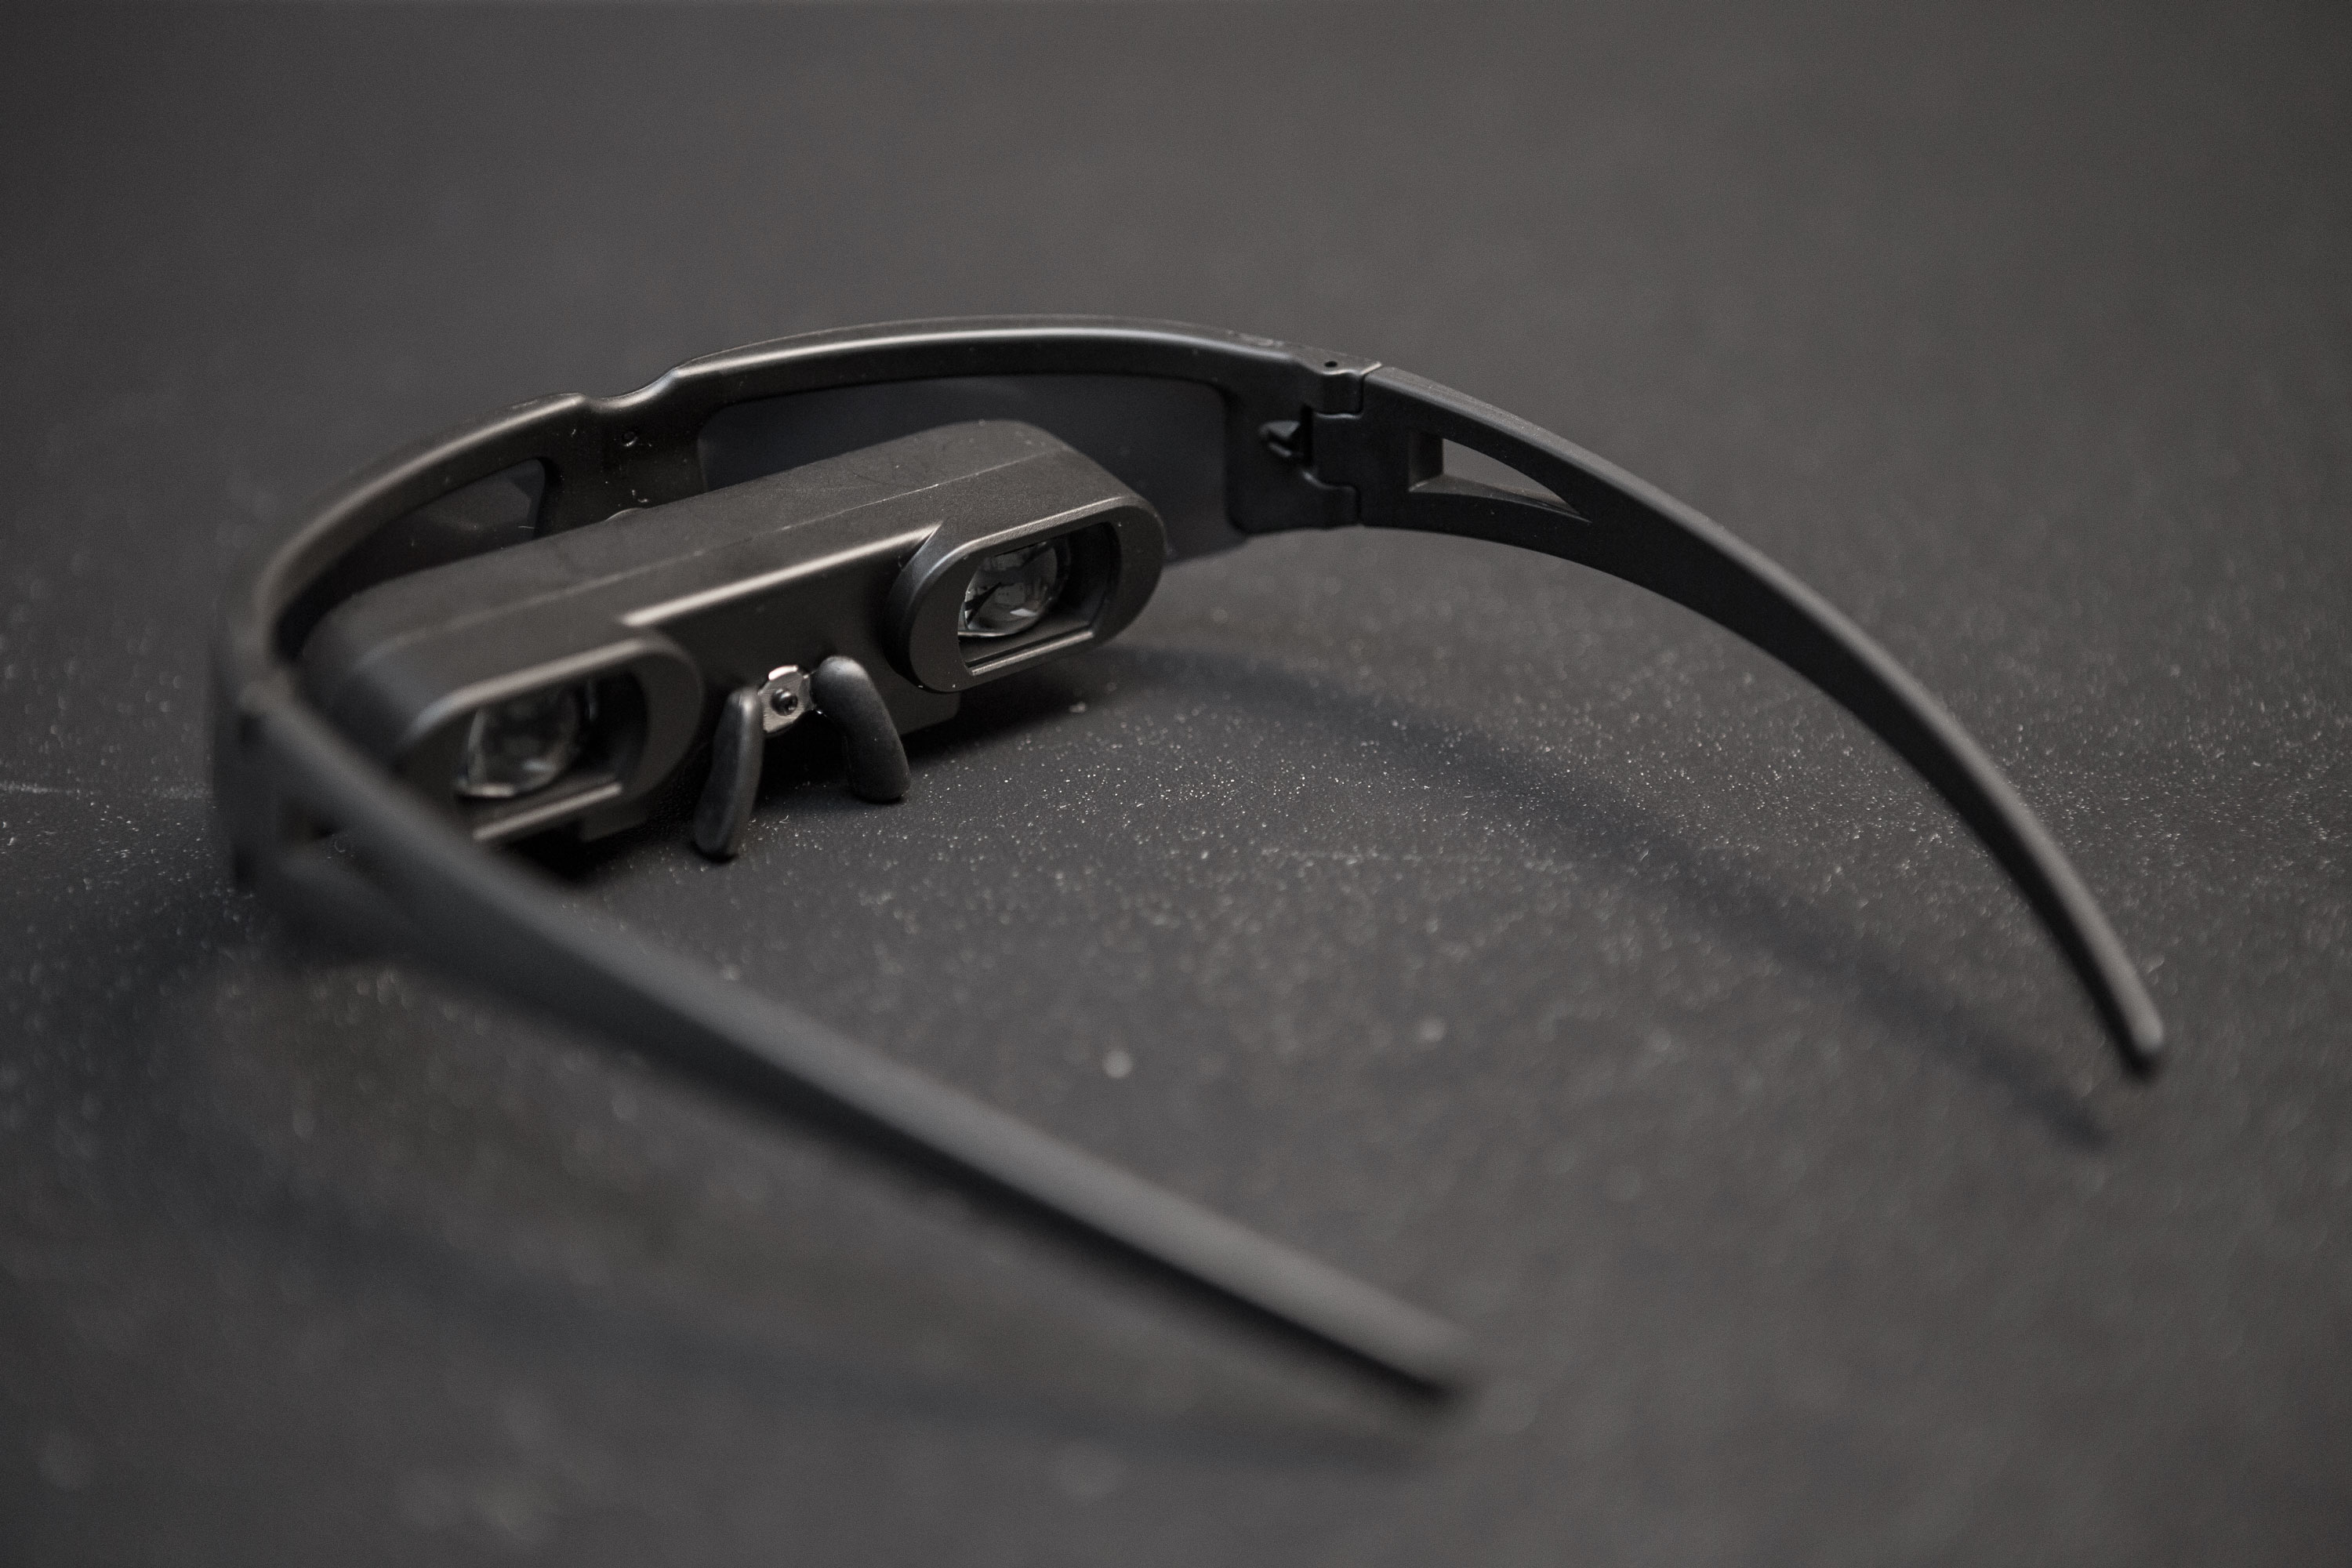 NTSC/PAL Video Glasses